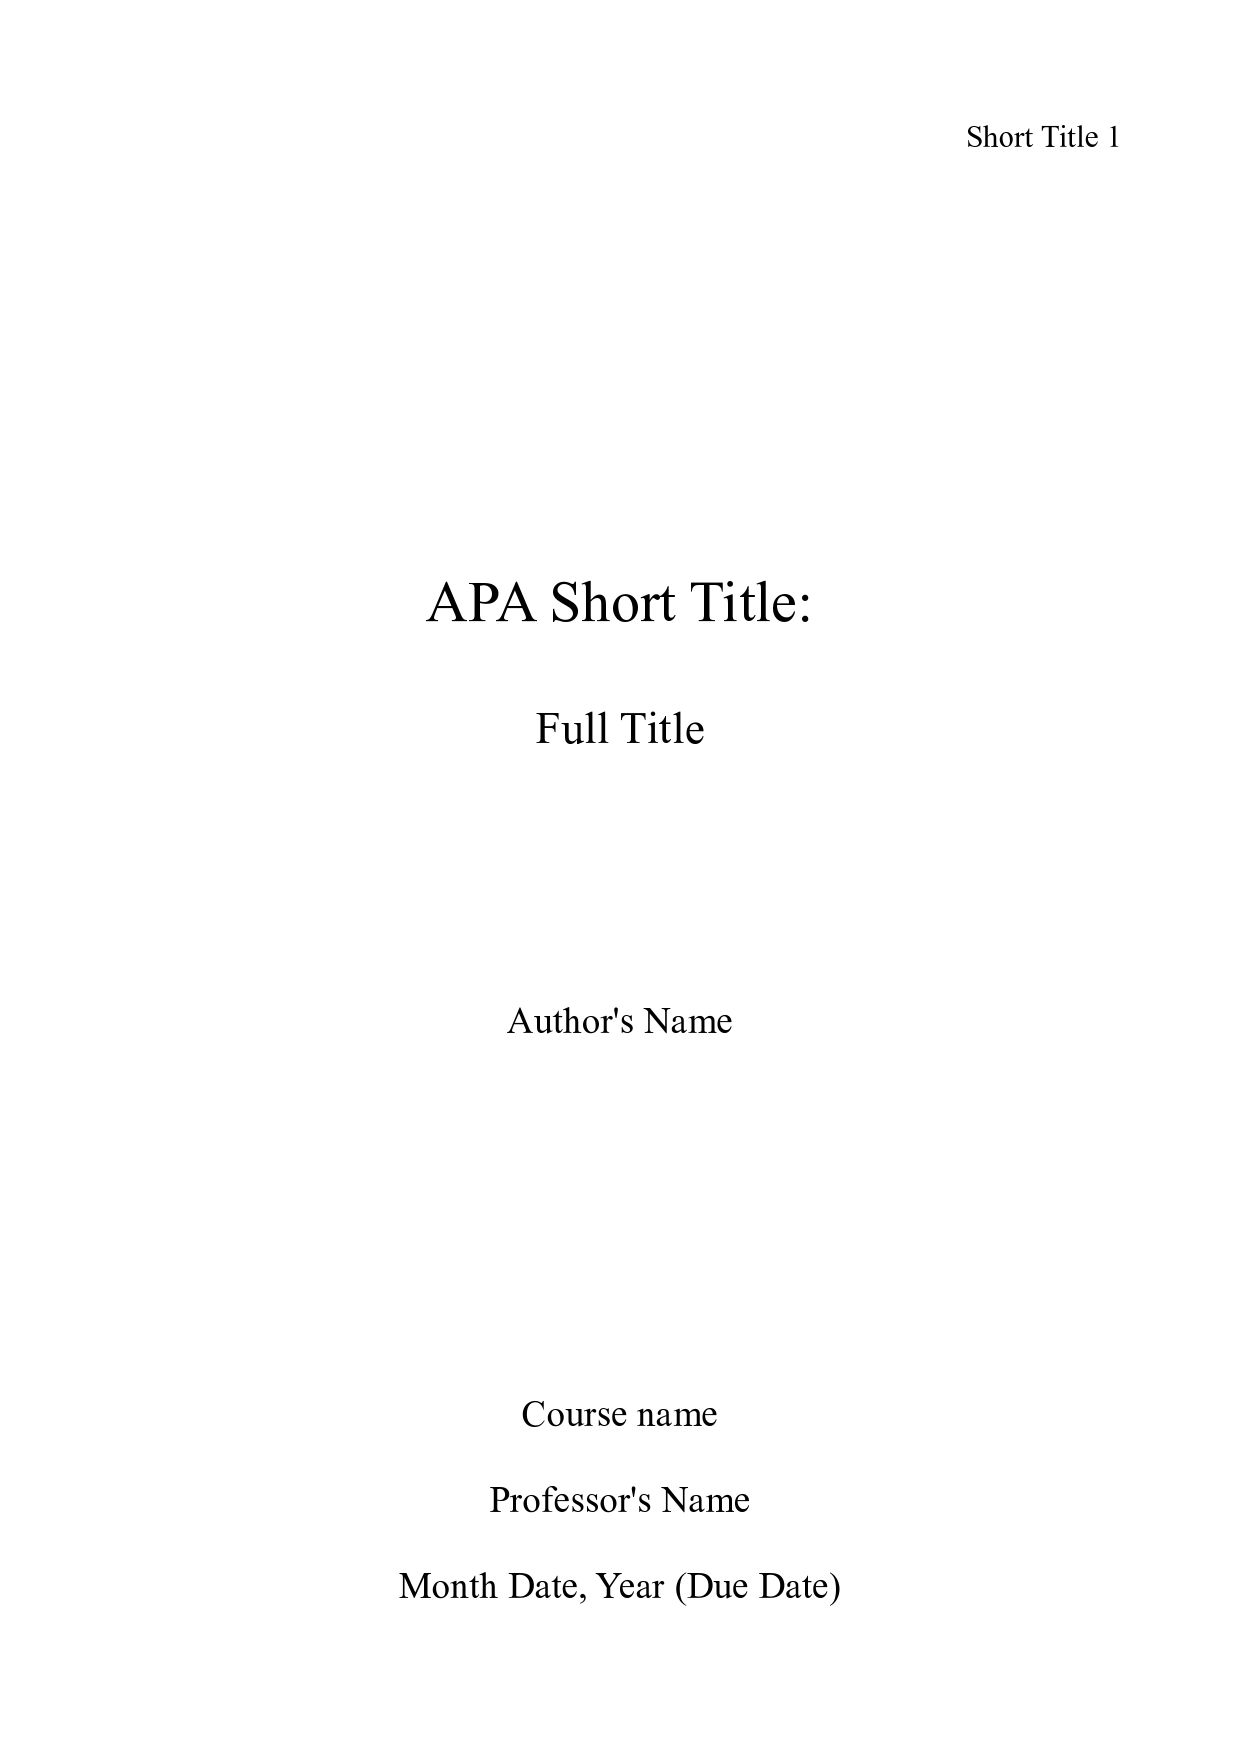 007 Research Paper Apa Format Cover Page Fearsome Style Abstract Full